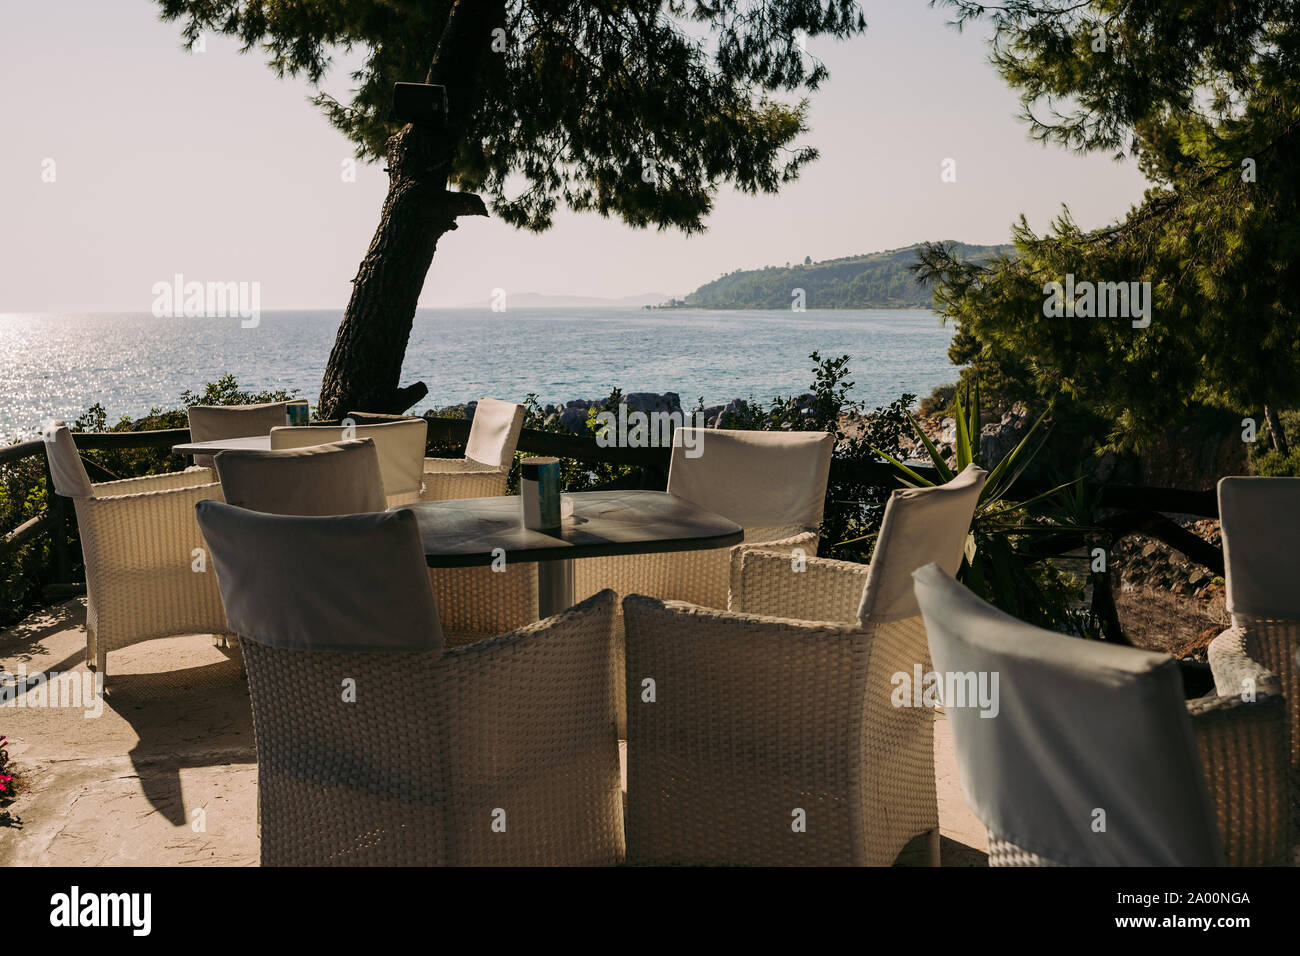 wicker chairs and tables in a summer cafe with sea views. Restaurant sea terrace Stock Photo